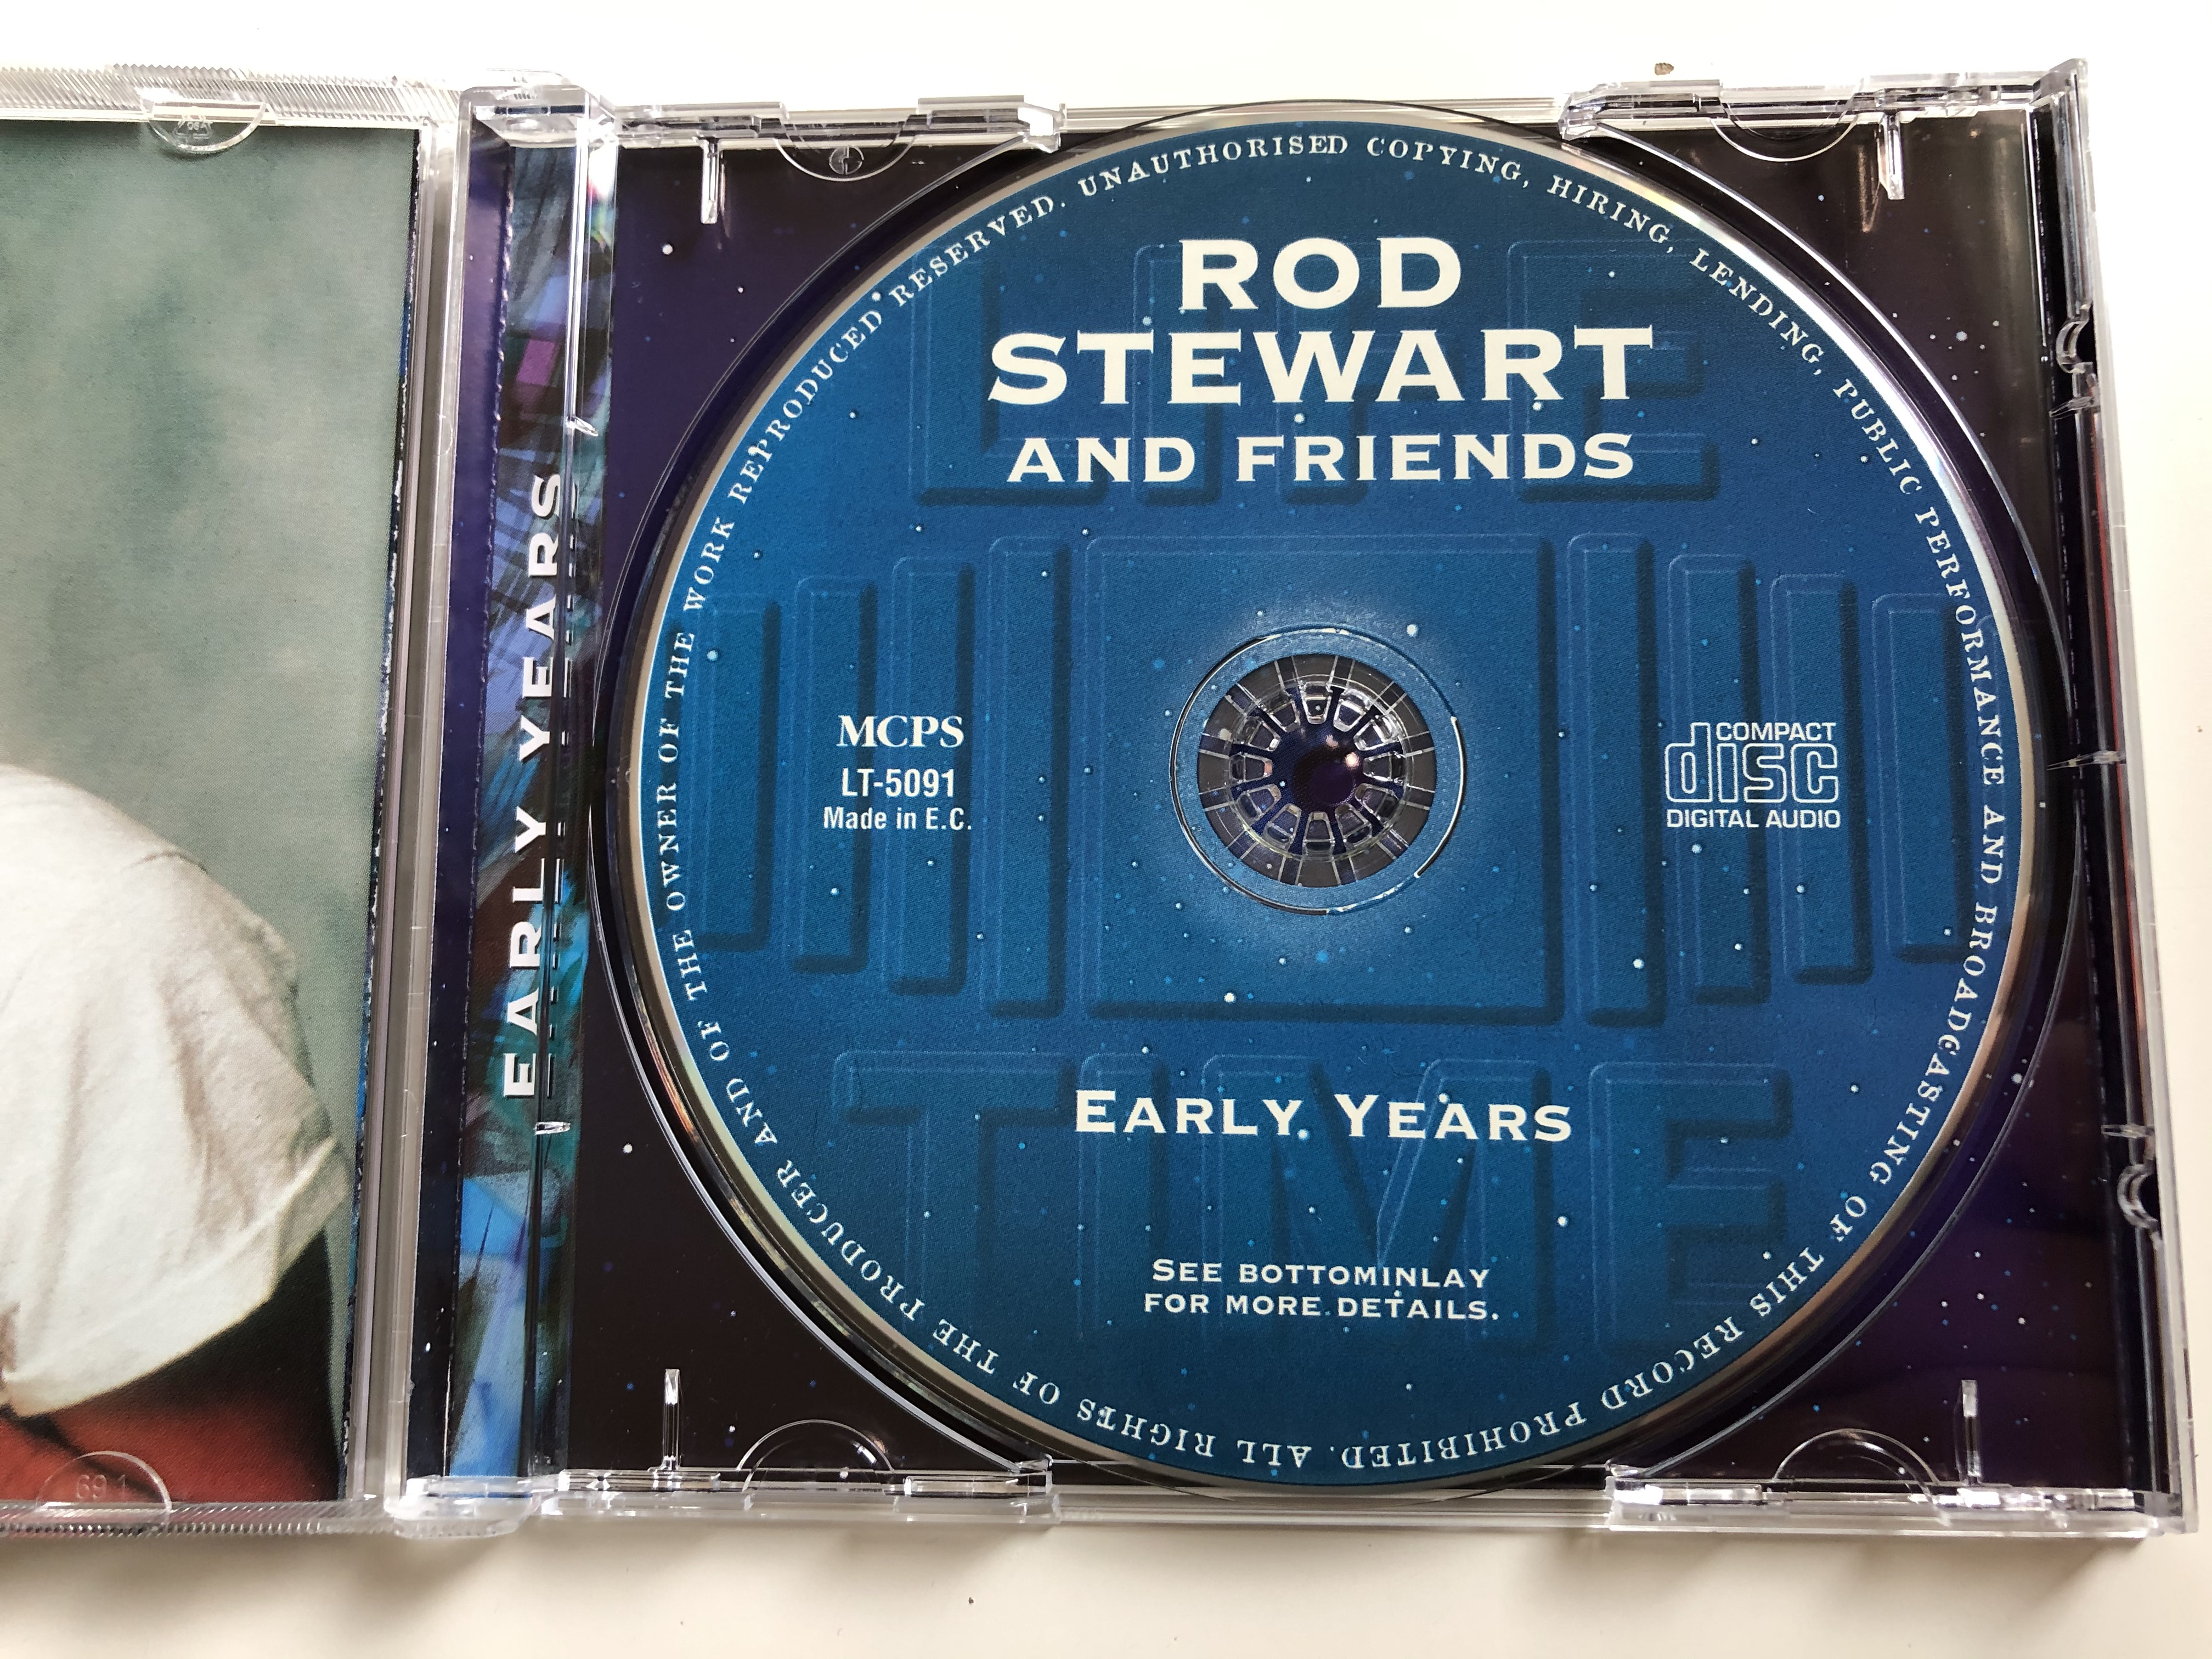 rod-stewart-and-friends-early-years-can-i-get-a-witness-little-miss-understood-ain-t-that-lovin-you-baby-bright-lights-big-city-life-time-audio-cd-lt-5091-2-.jpg